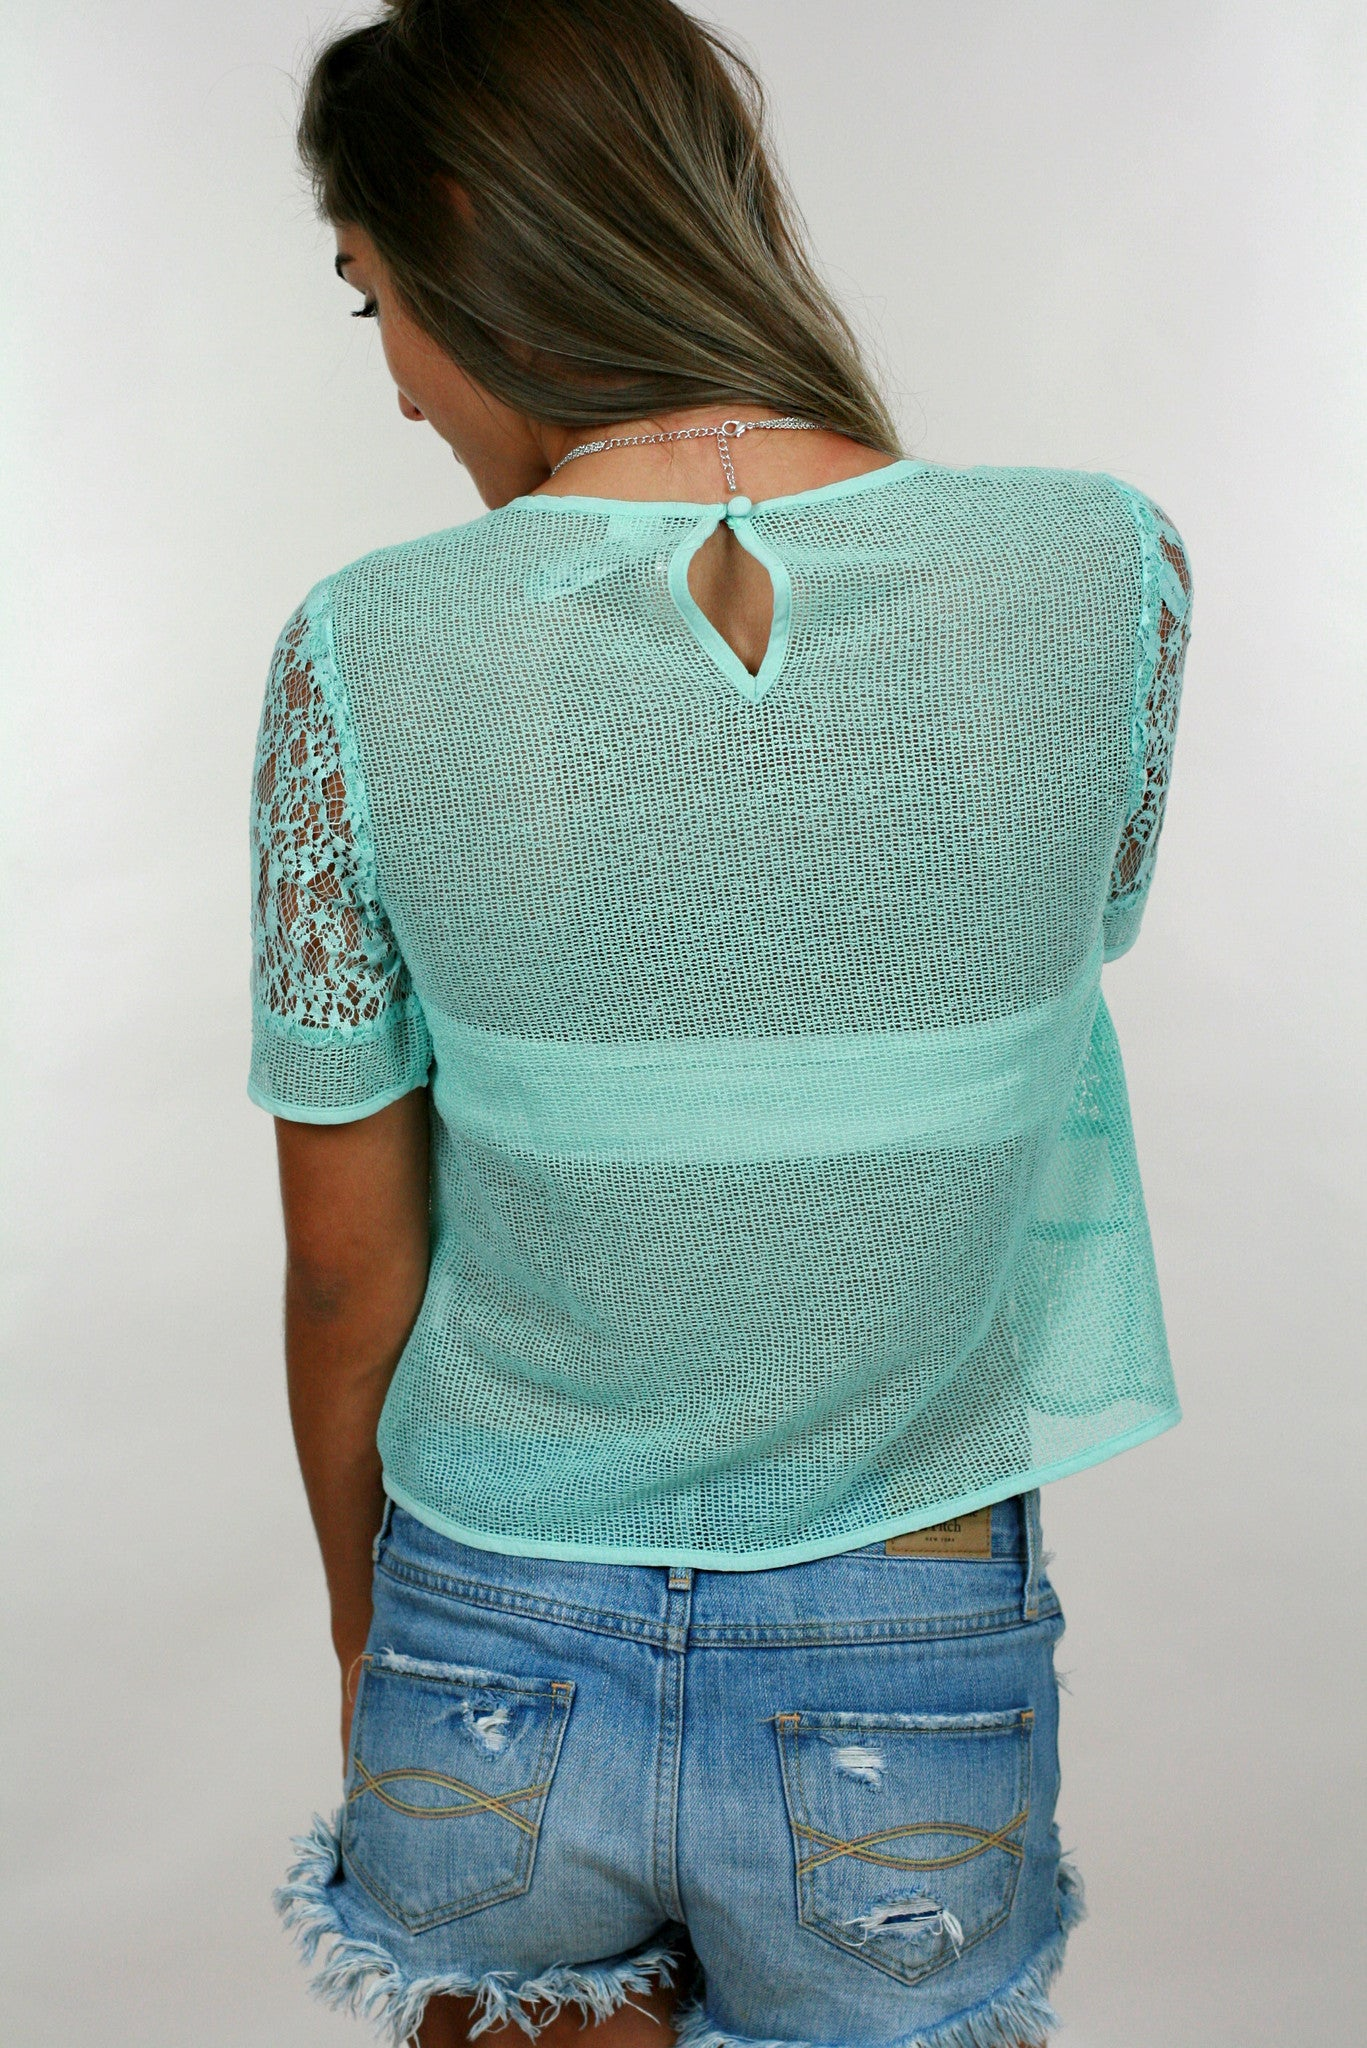 Glam Teal Top - Never Naked Boutique